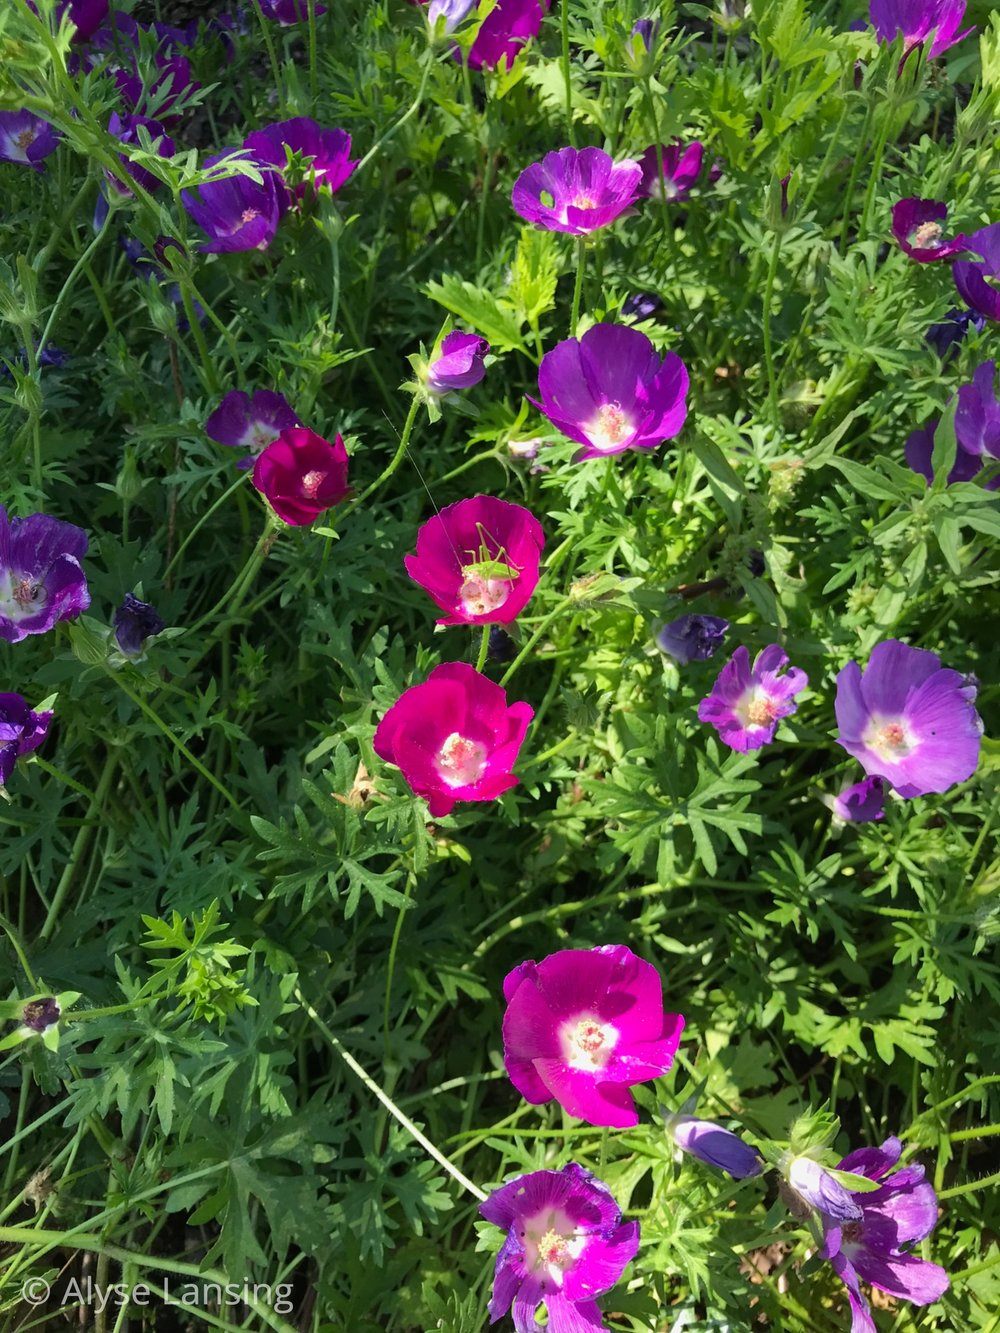 Purple Poppy-Mallow, or Winecups.  And green cricket-y critter enjoying the center.